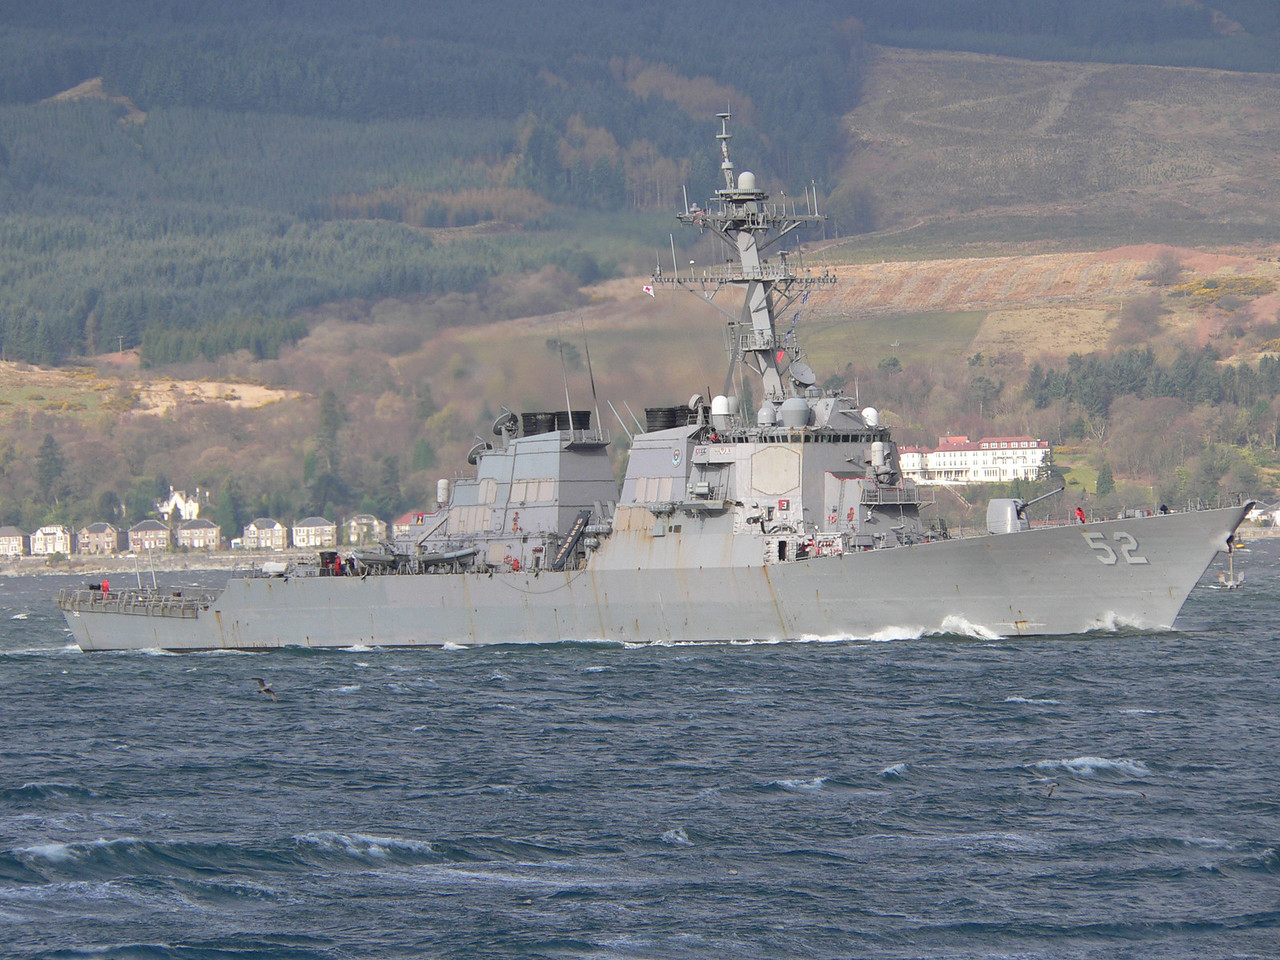 DDG-52 USS BARRY